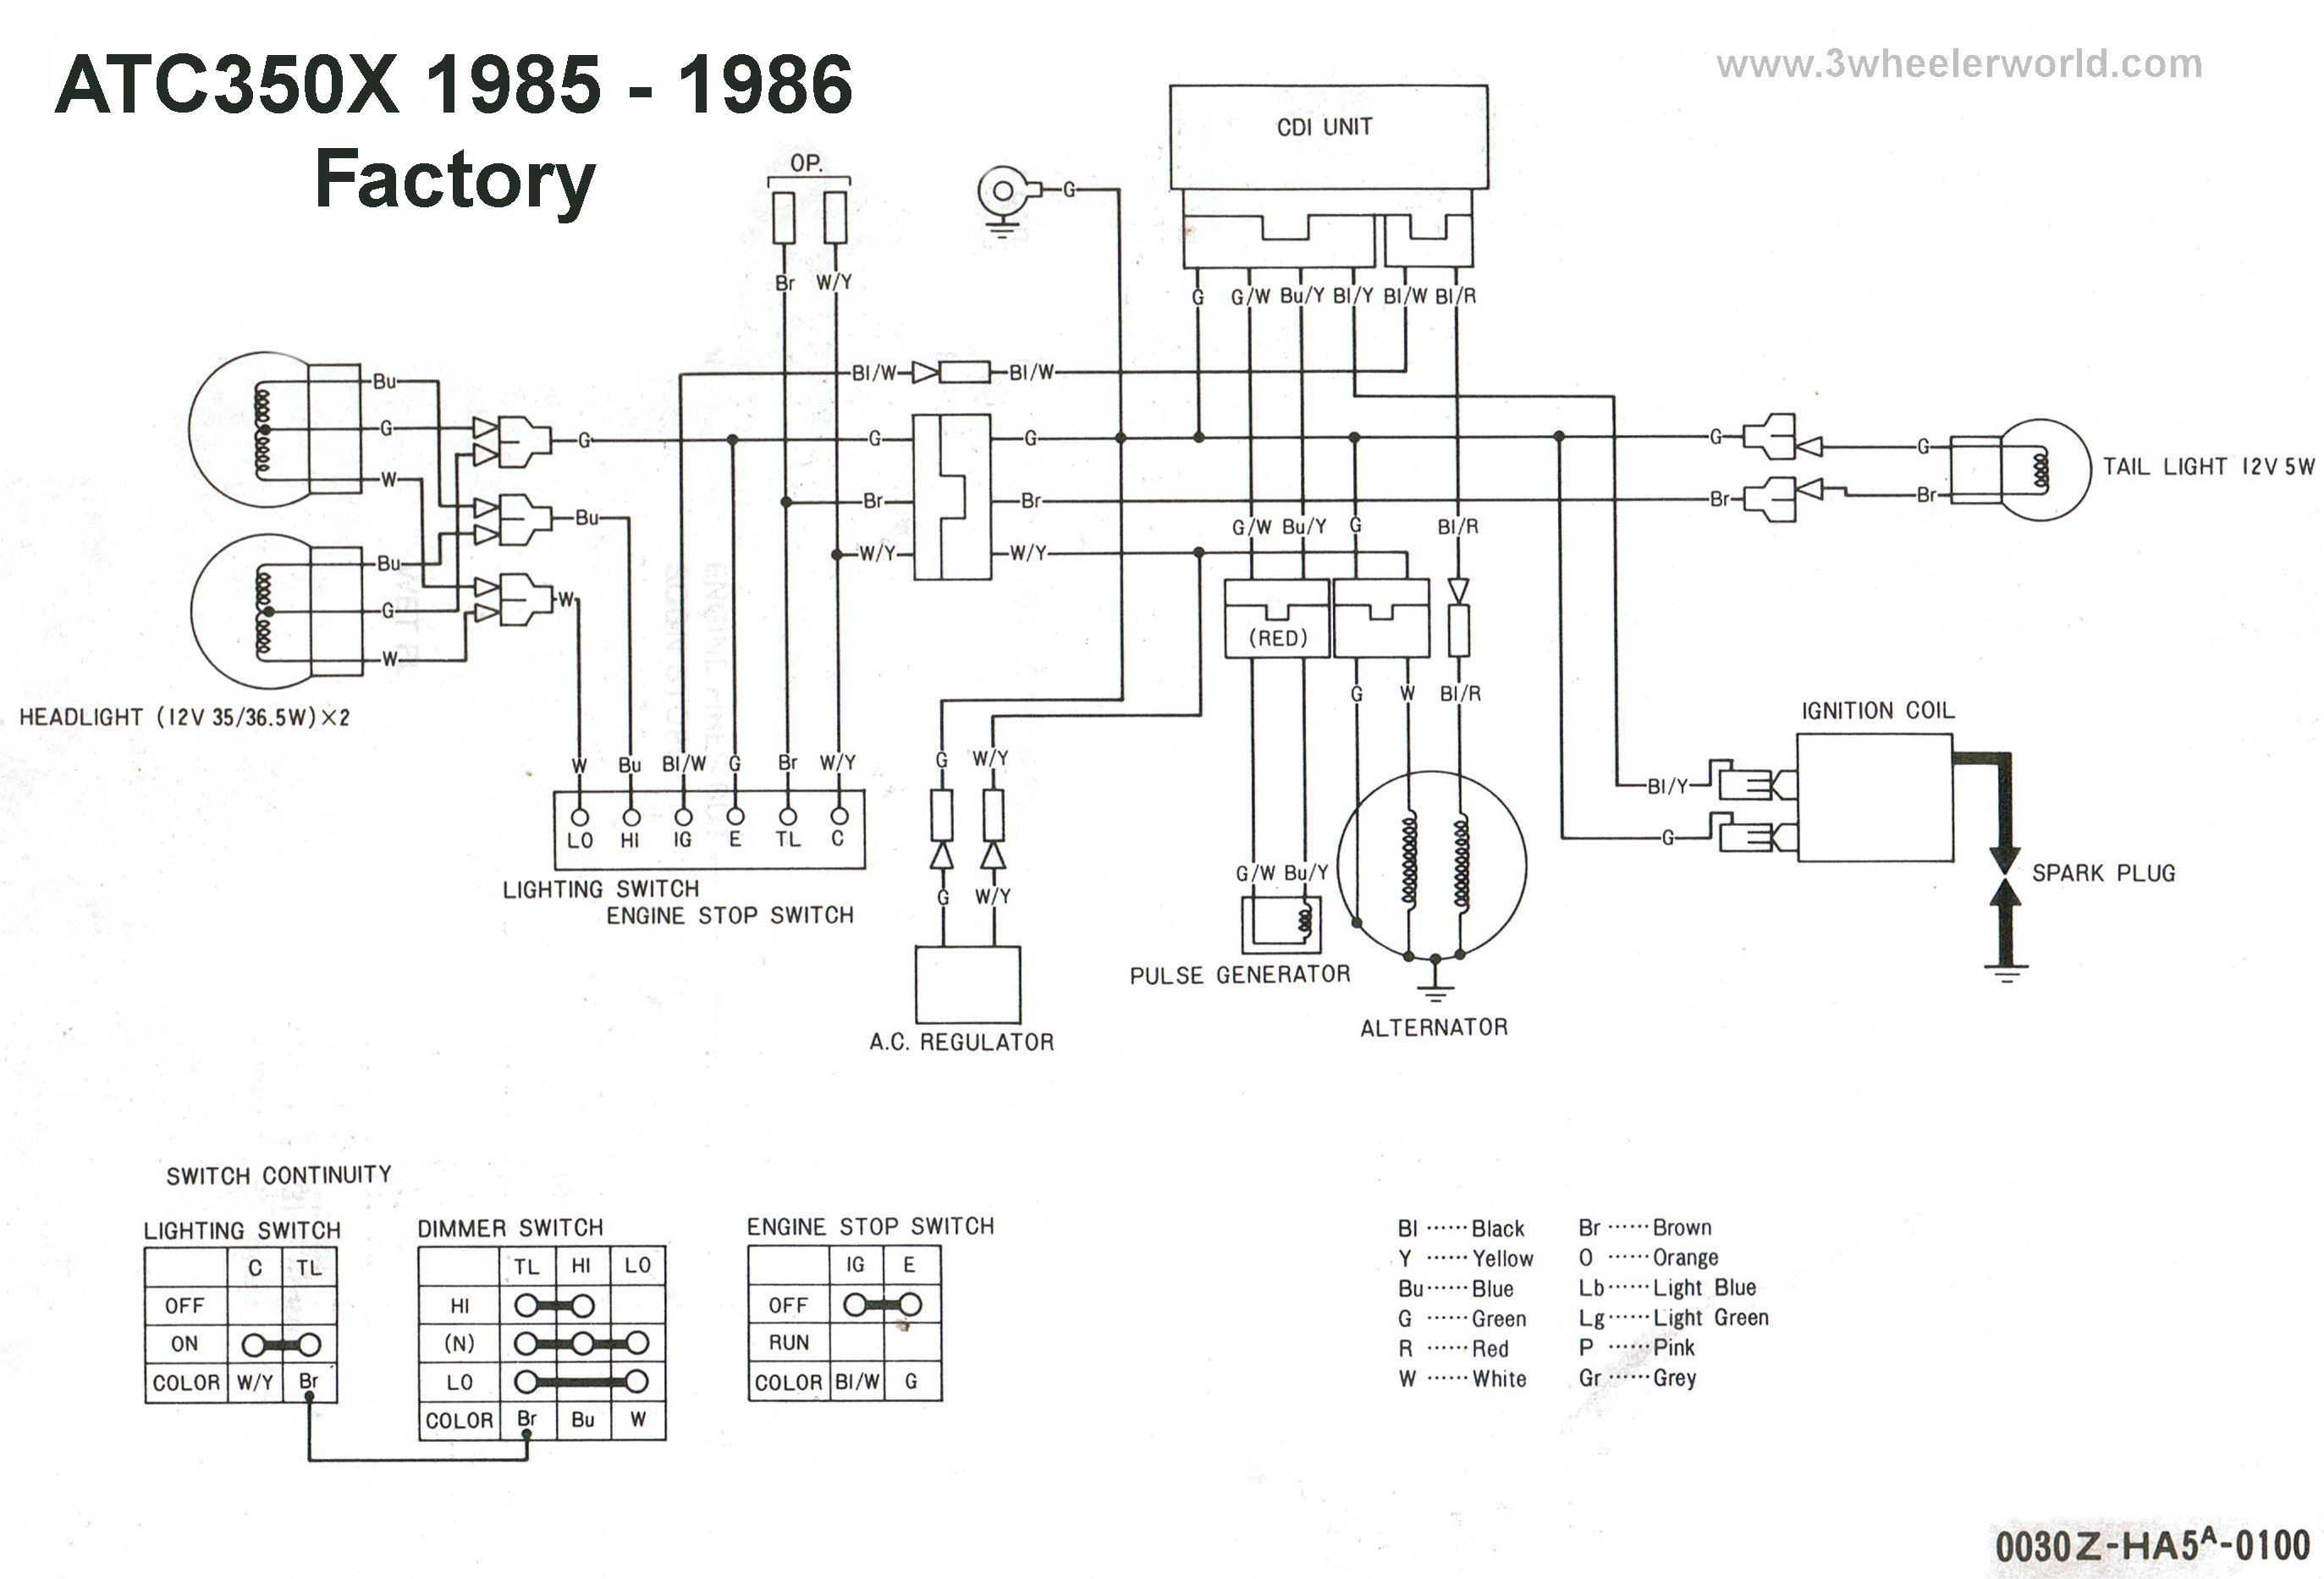 ATC350Xx85Thru86 honda 250x wiring diagram on honda download wirning diagrams 1985 honda spree wiring diagram at gsmx.co